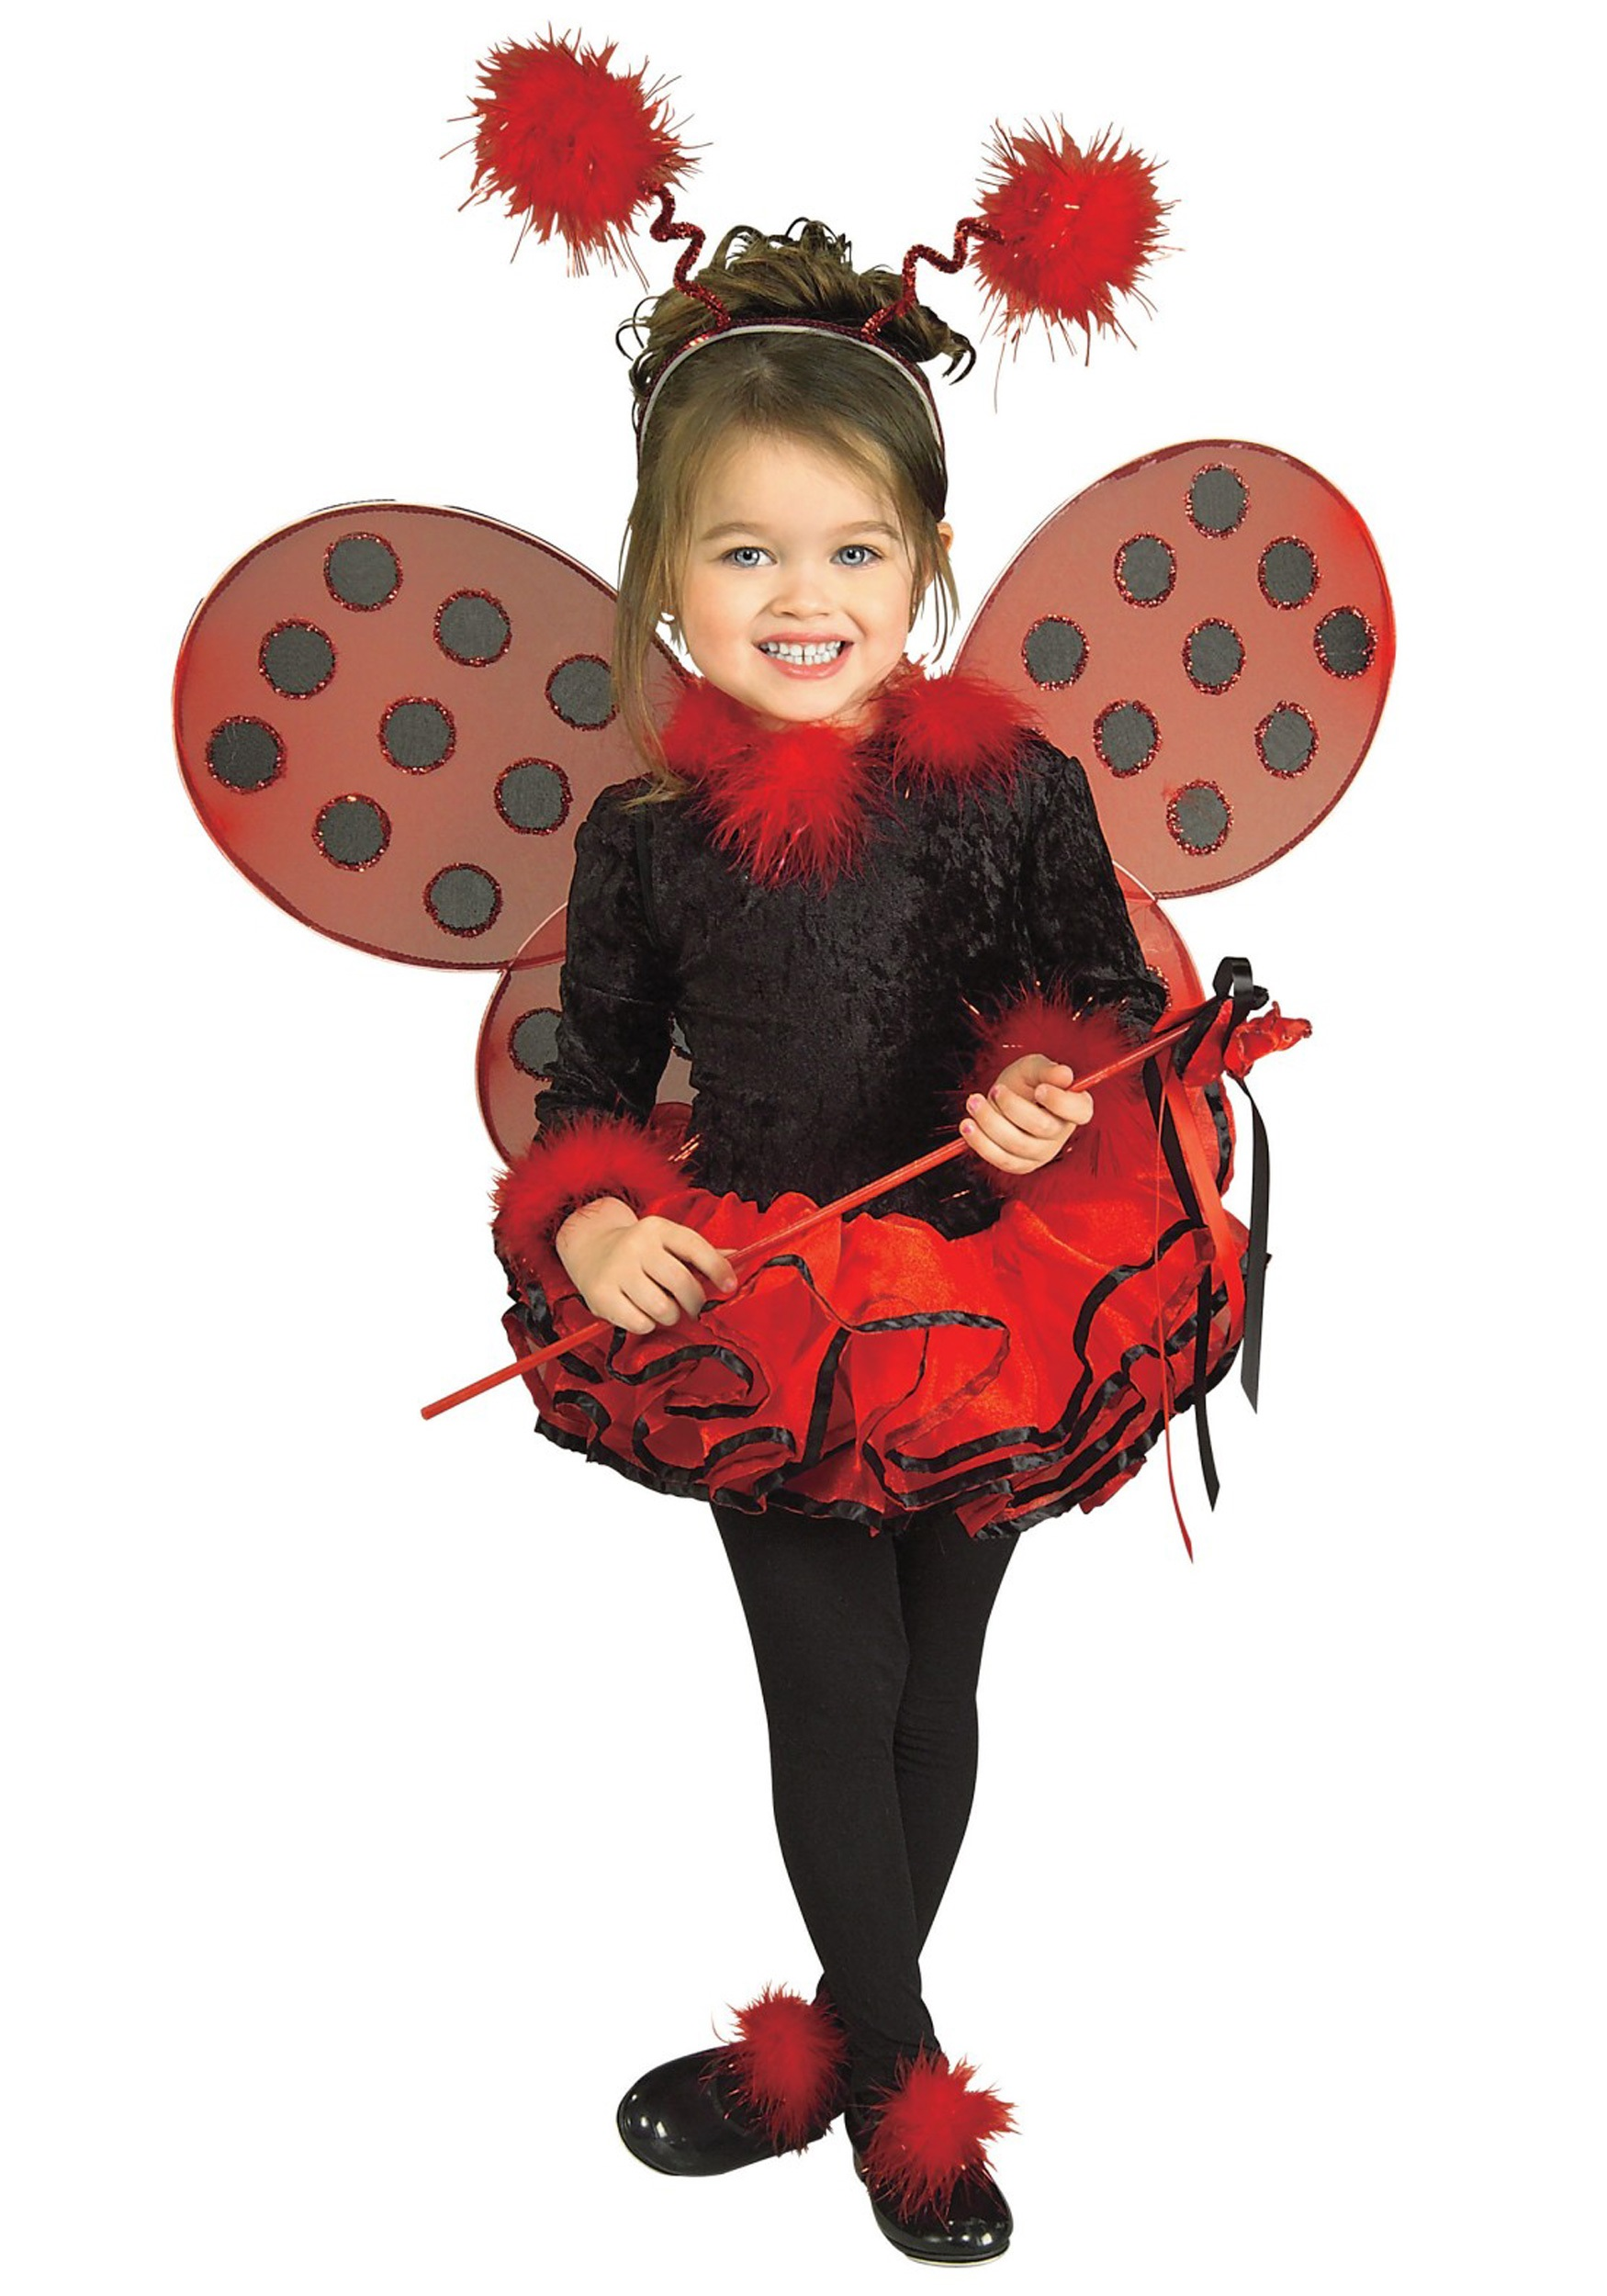 Your kids will go crazy for these homemade Halloween costume ideas for boys and girls of all ages (from babies to toddlers to tweens!). Whether your child is going for cute or scary, these DIY costumes are easy to make and fun to wear.